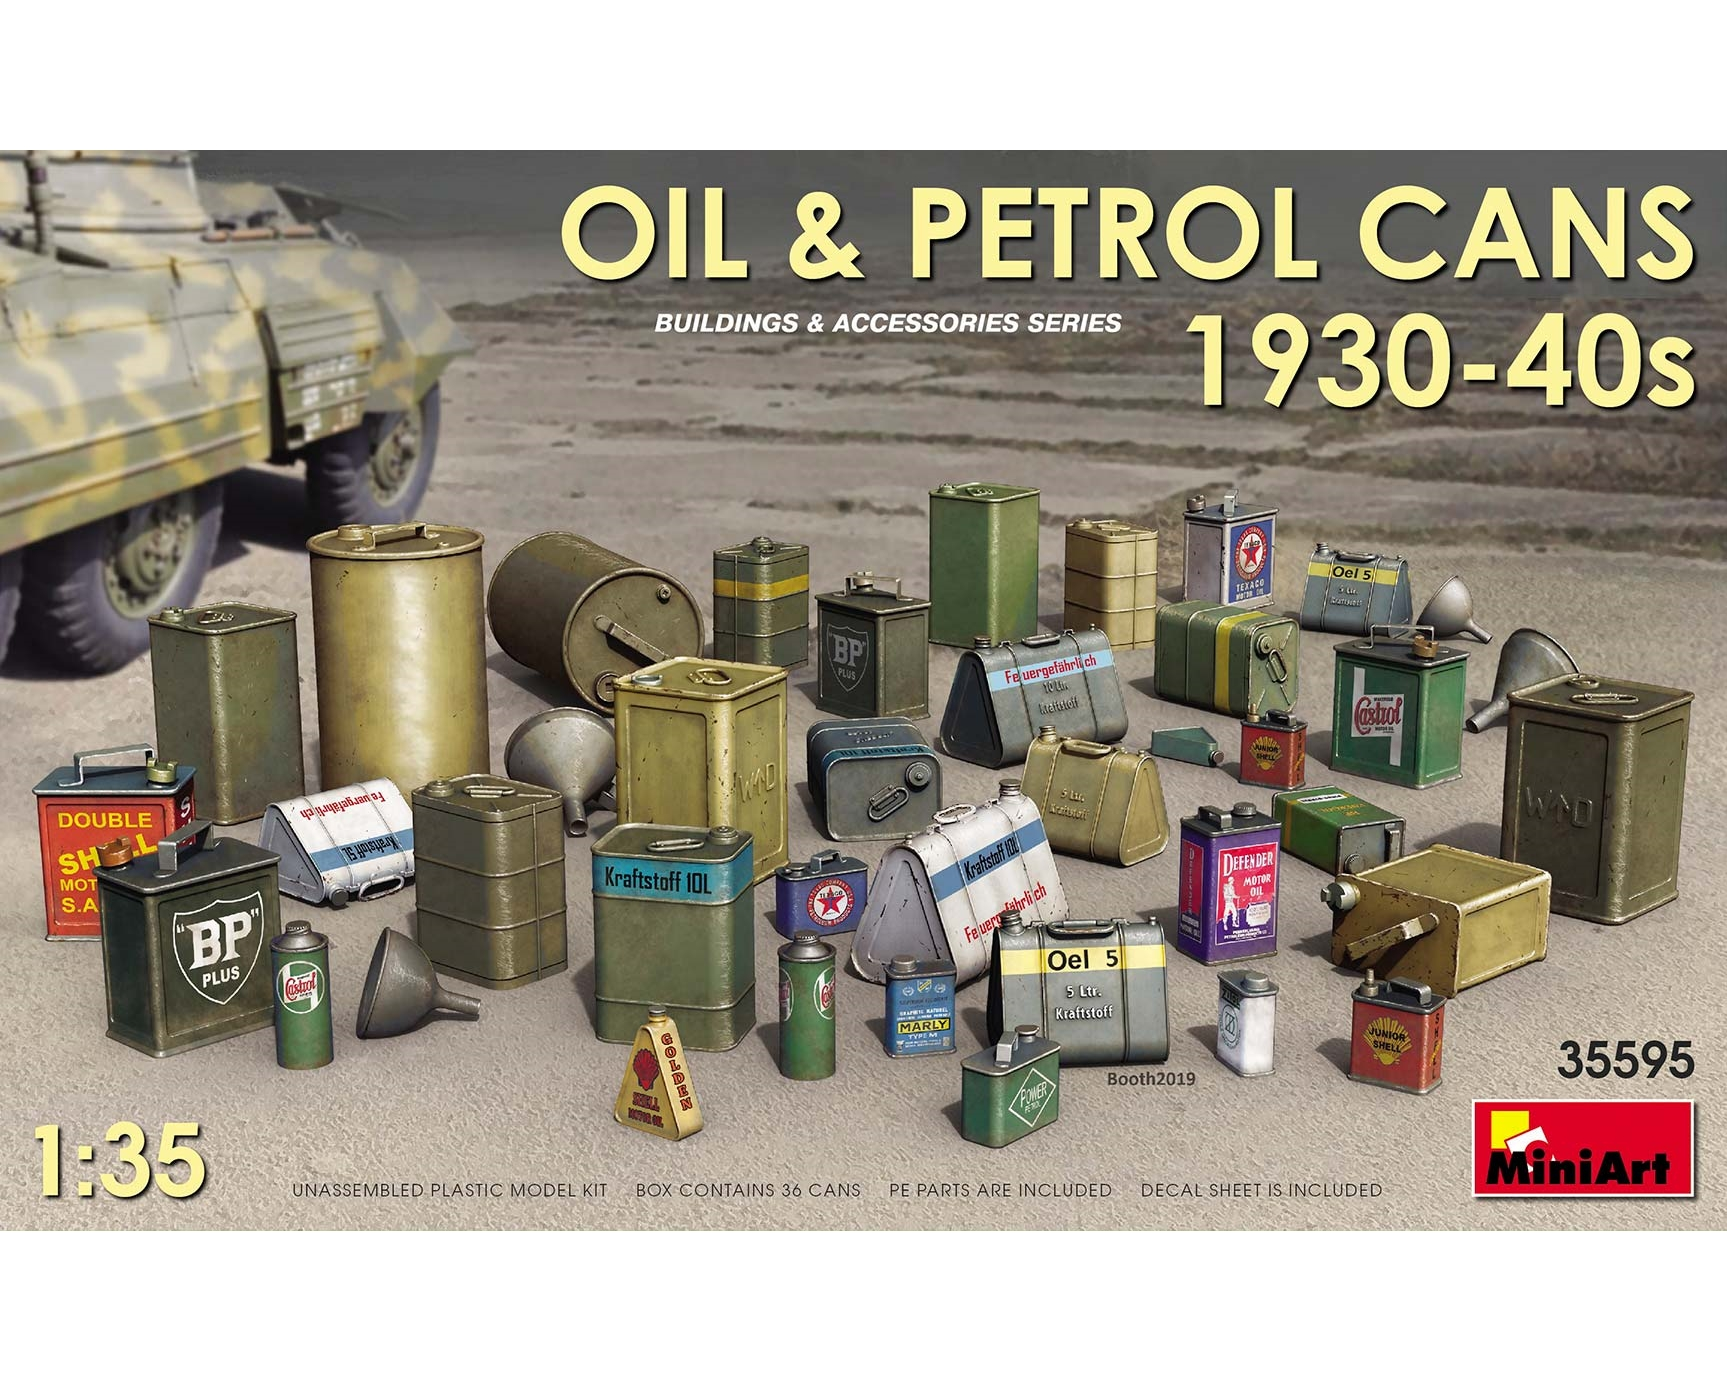 OIL & PETROL CANS 1930-1940